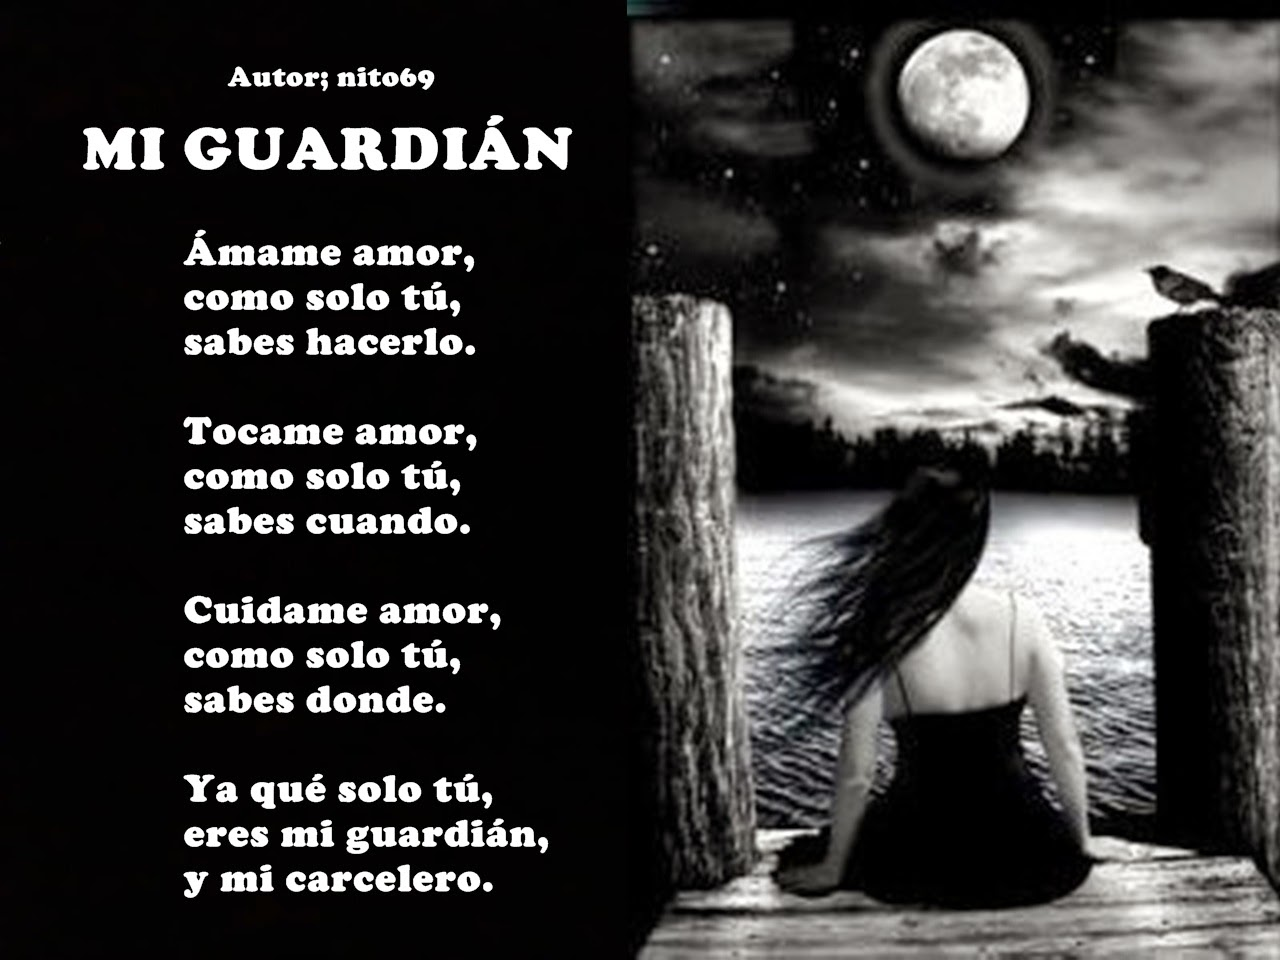 MI GUARDIÁN